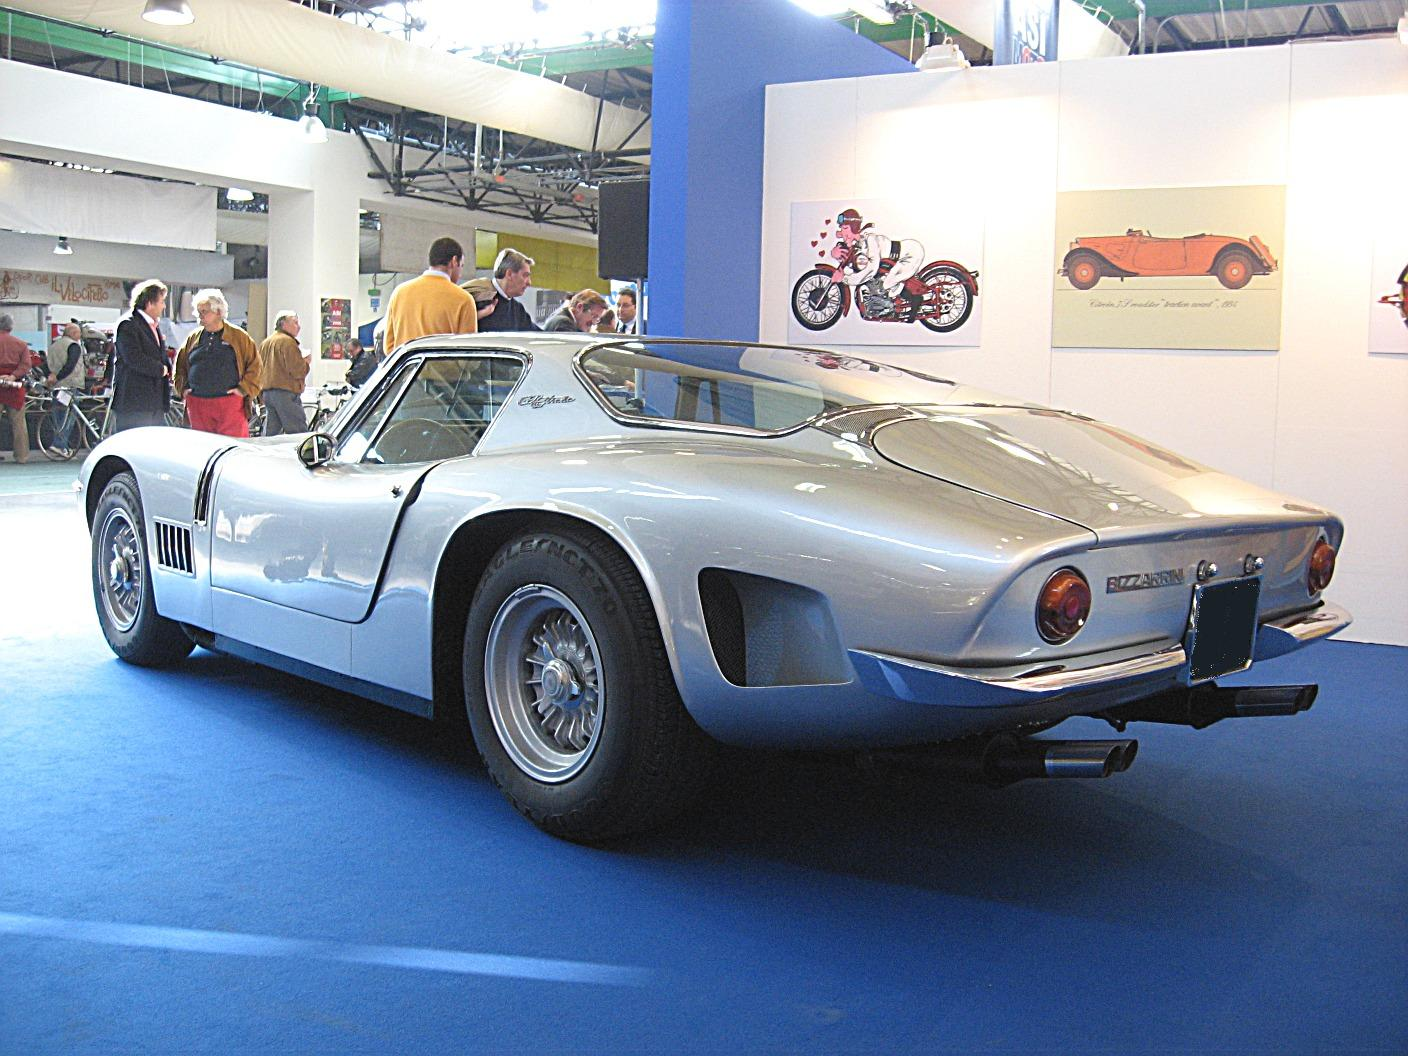 Bizzarrini 5300 GT Rear